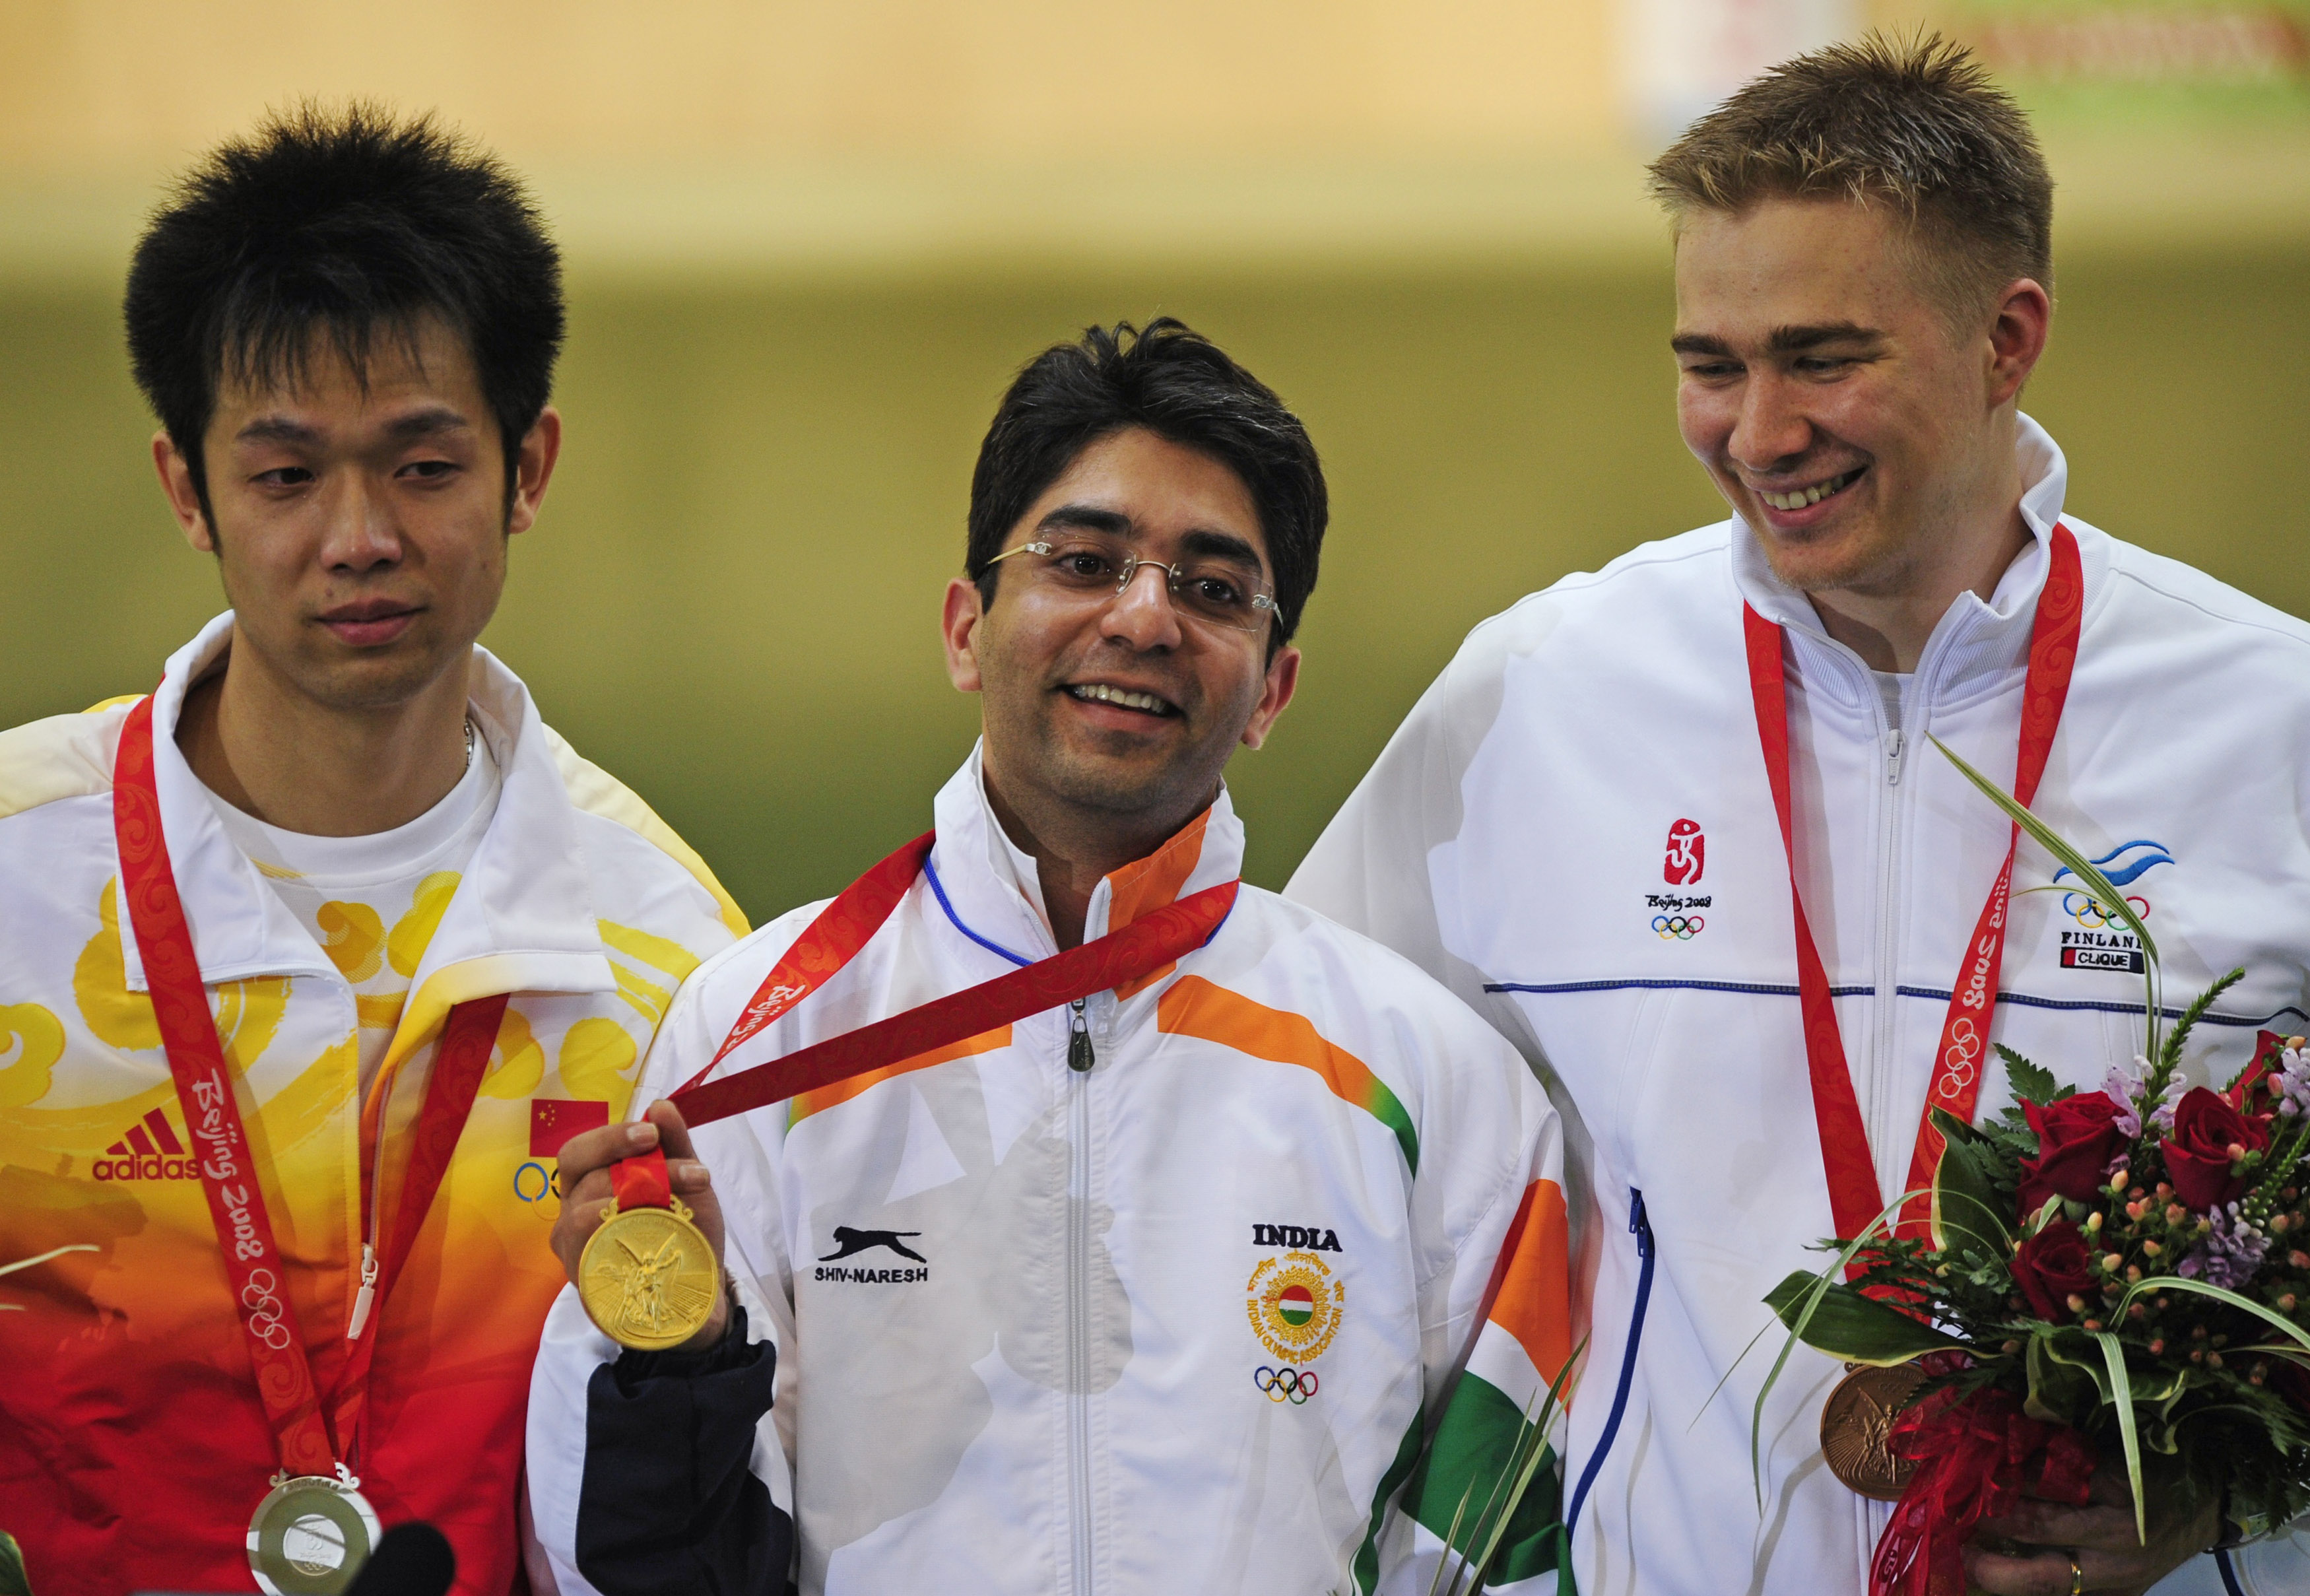 Abhinav Bindra with his Olympic gold medal. Image Credit: Desmond Boylan / Reuters